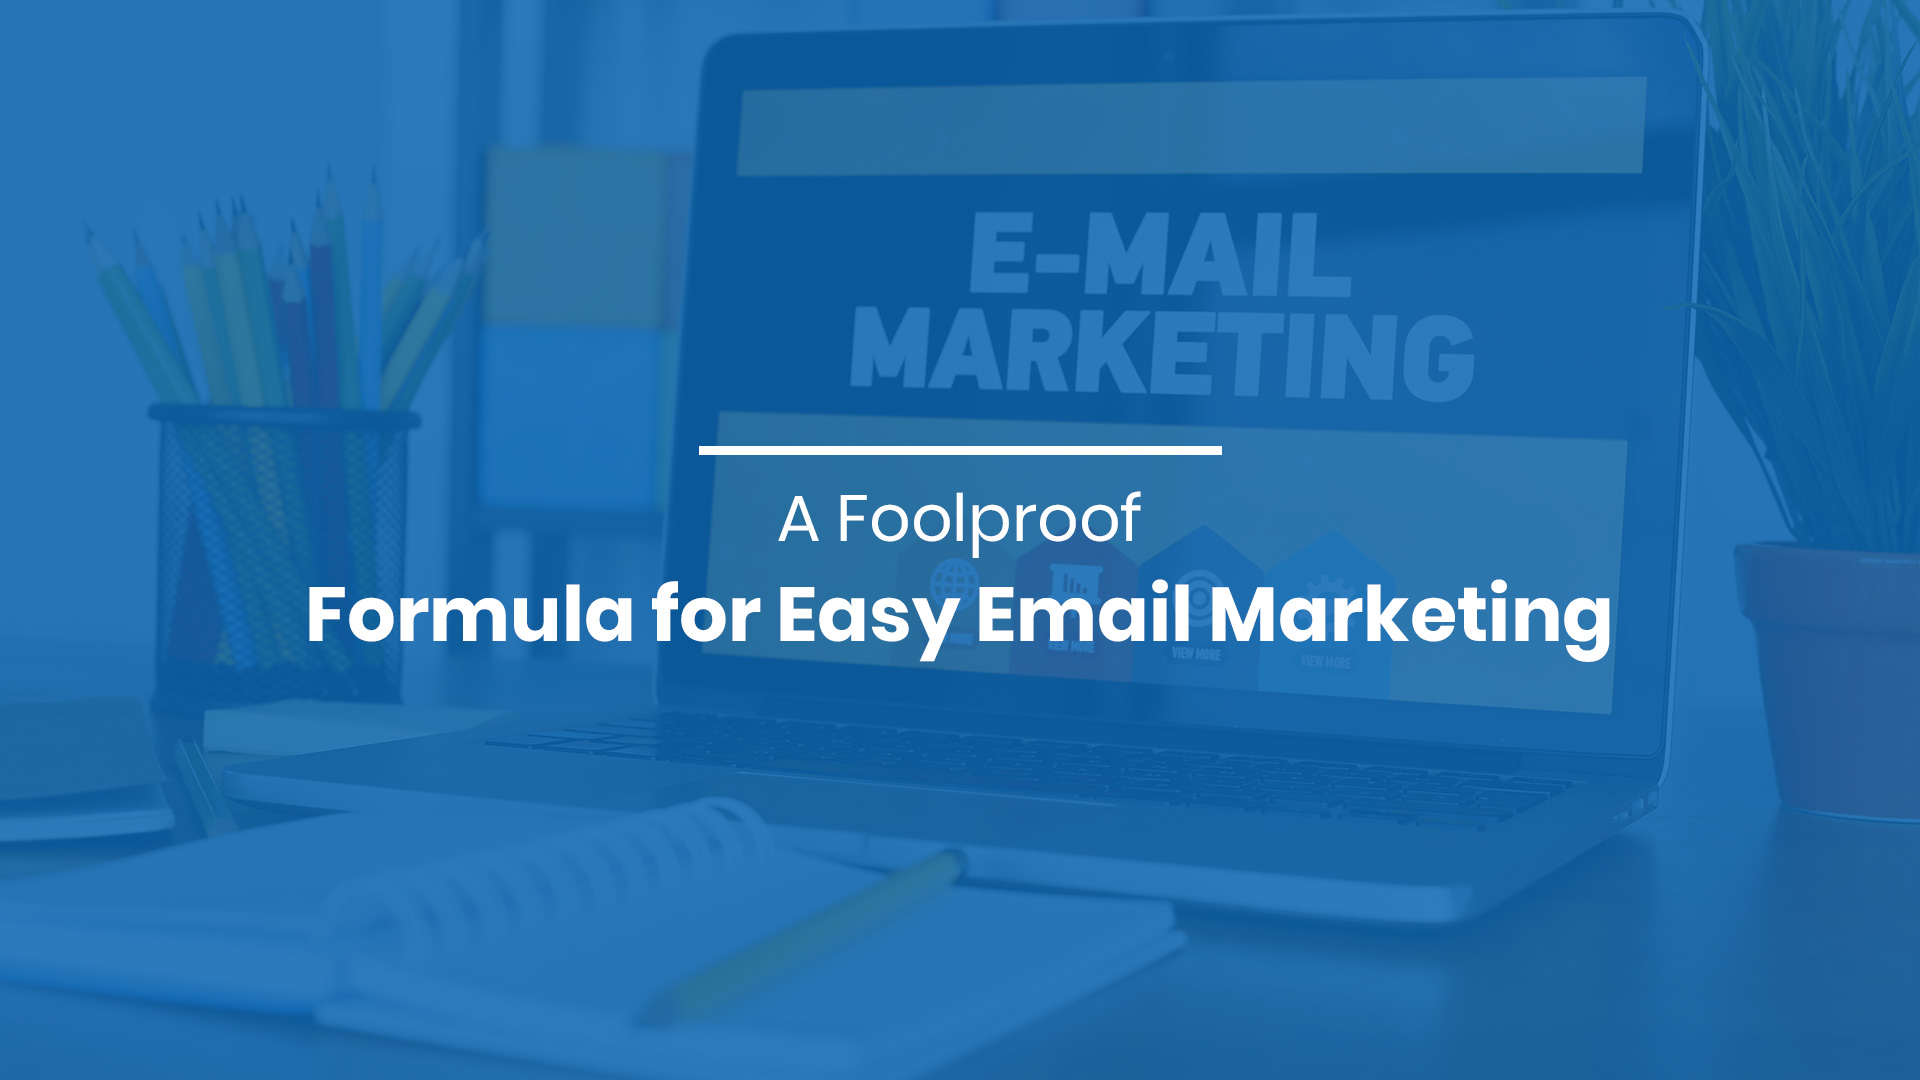 A Foolproof Formula for Easy Email Marketing